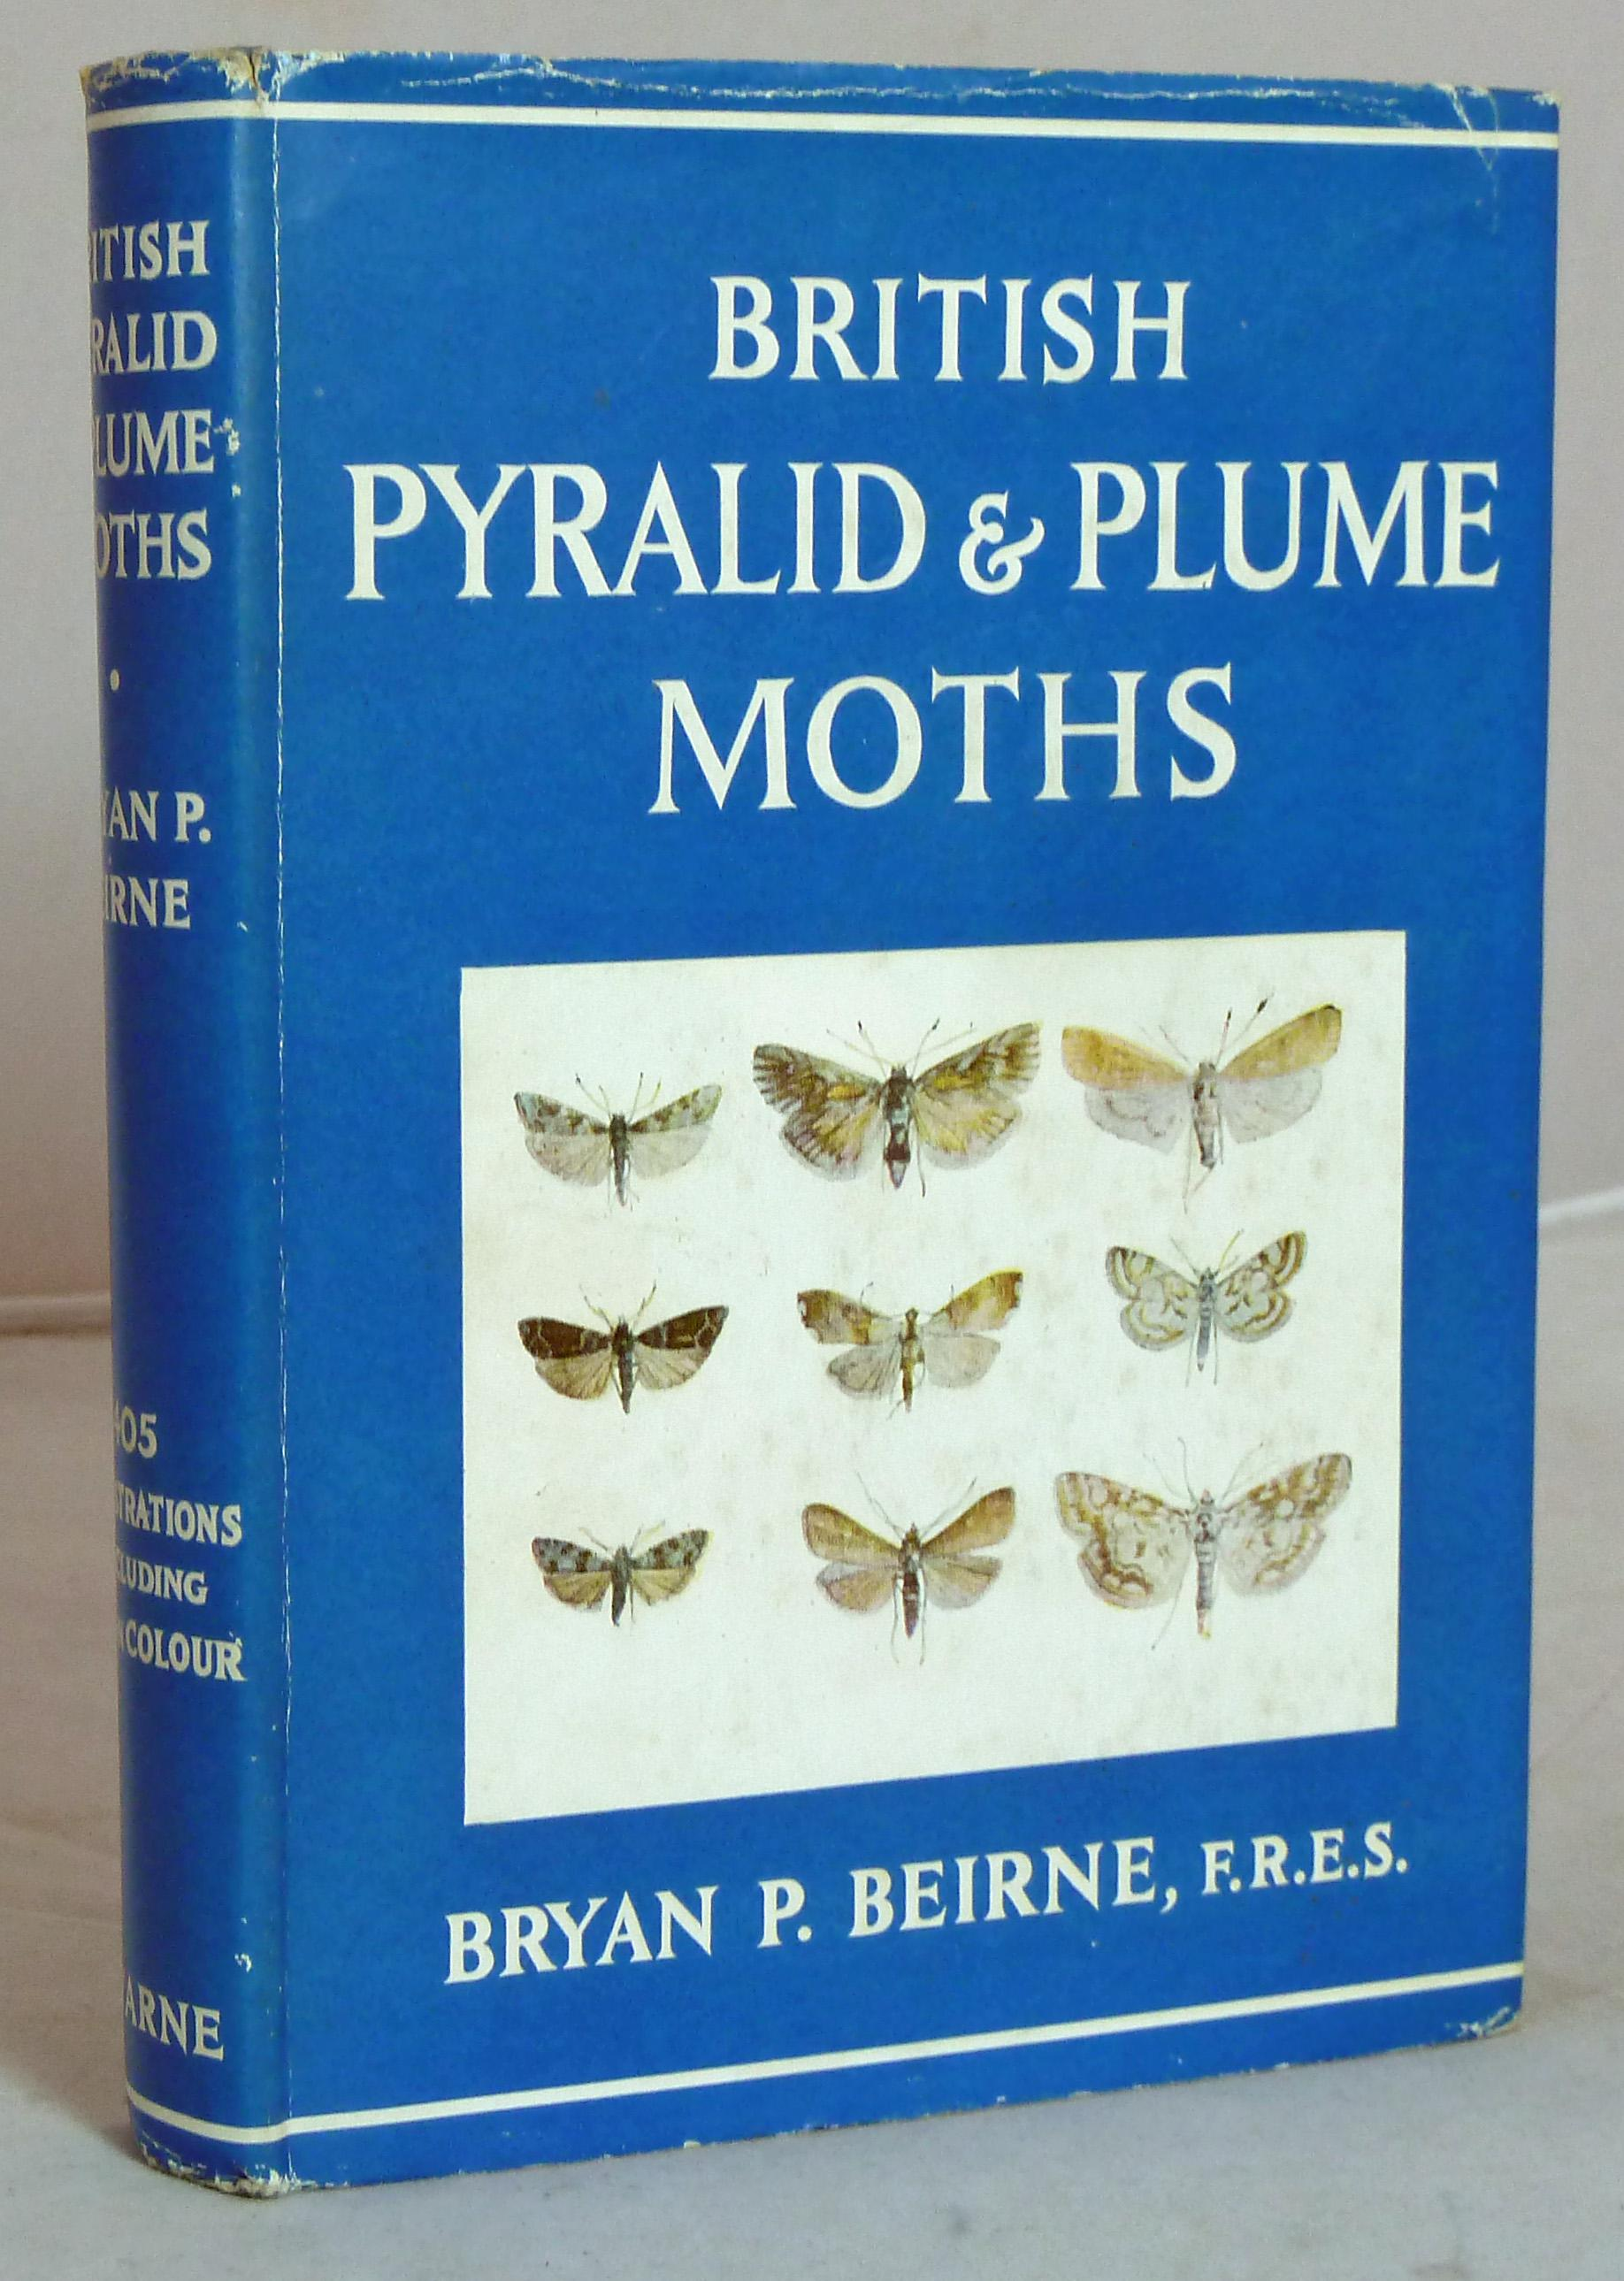 The Wayside And Woodland Series. British Pyralid & Plume Moths